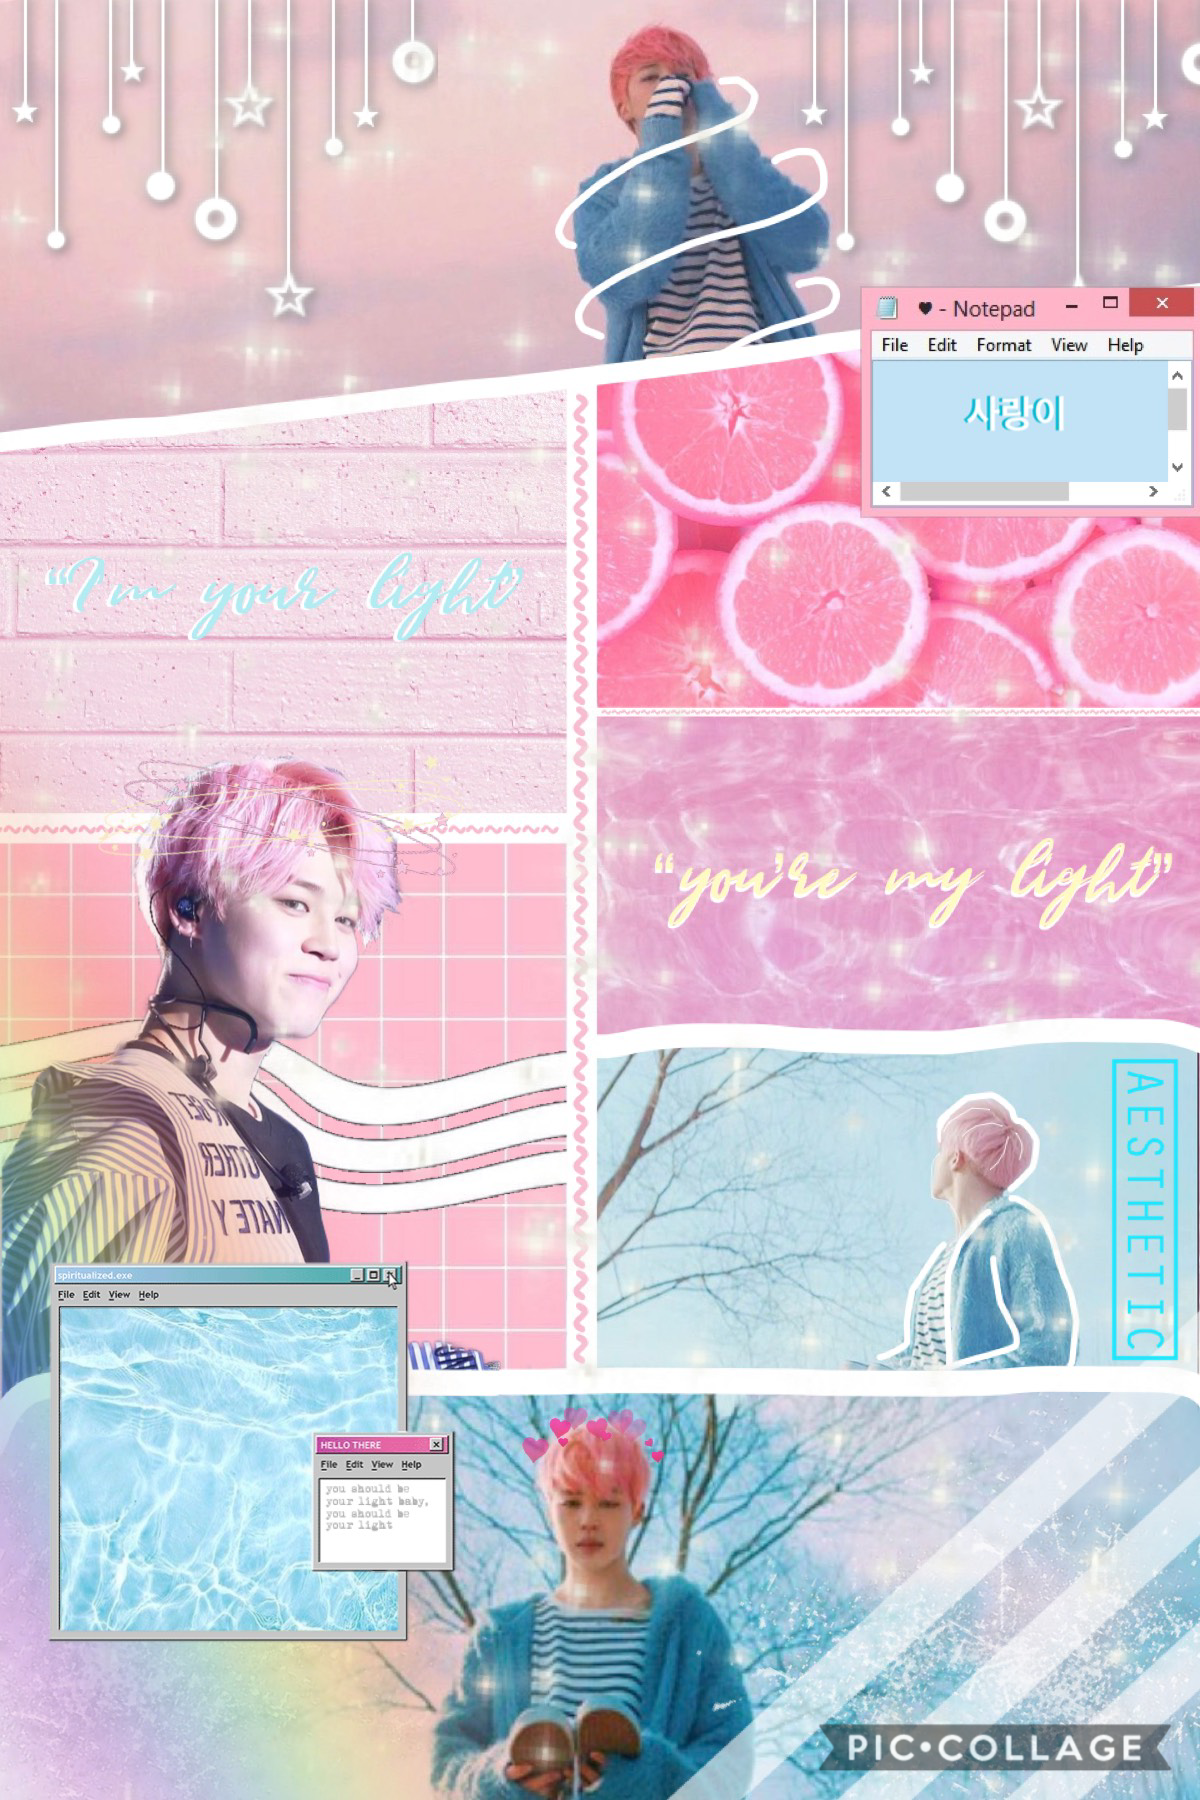 🌸 tap 🌸   collage 5/5   well, this is it. it's the last one. Ill figure out when I'm officially leaving, but for now I don't have any more collages to post (expect for a few extra ones if needed)   enjoy!